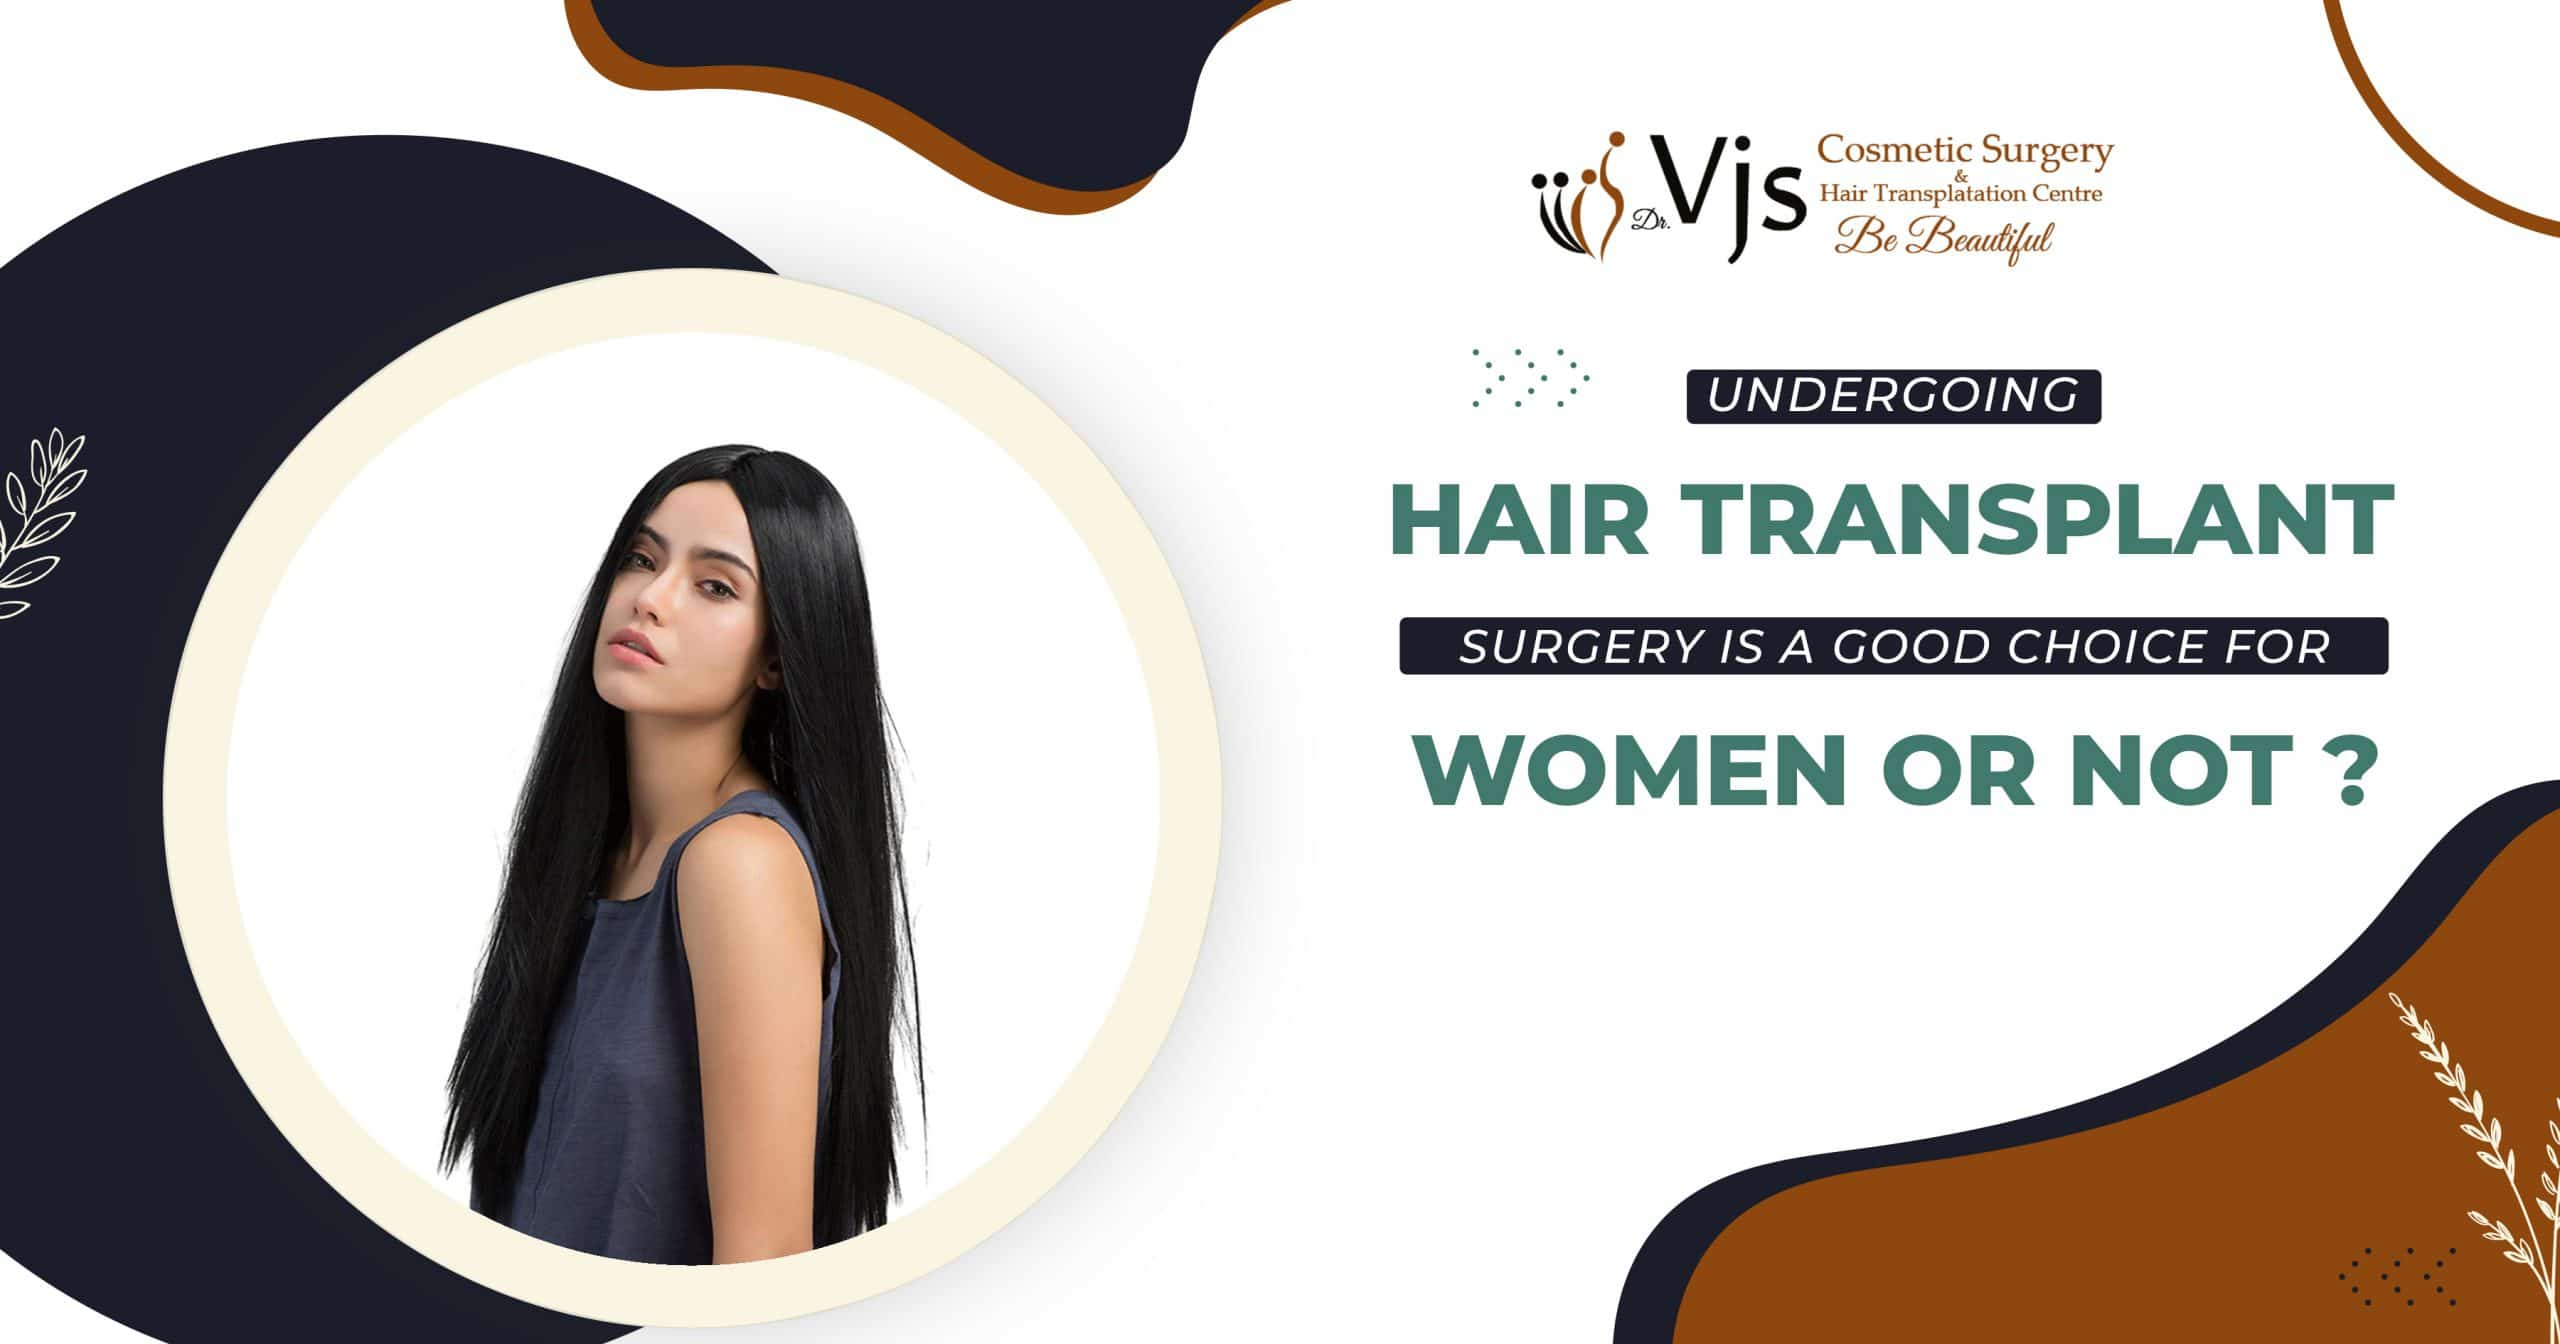 Undergoing hair transplant surgery is a good choice for women or not?